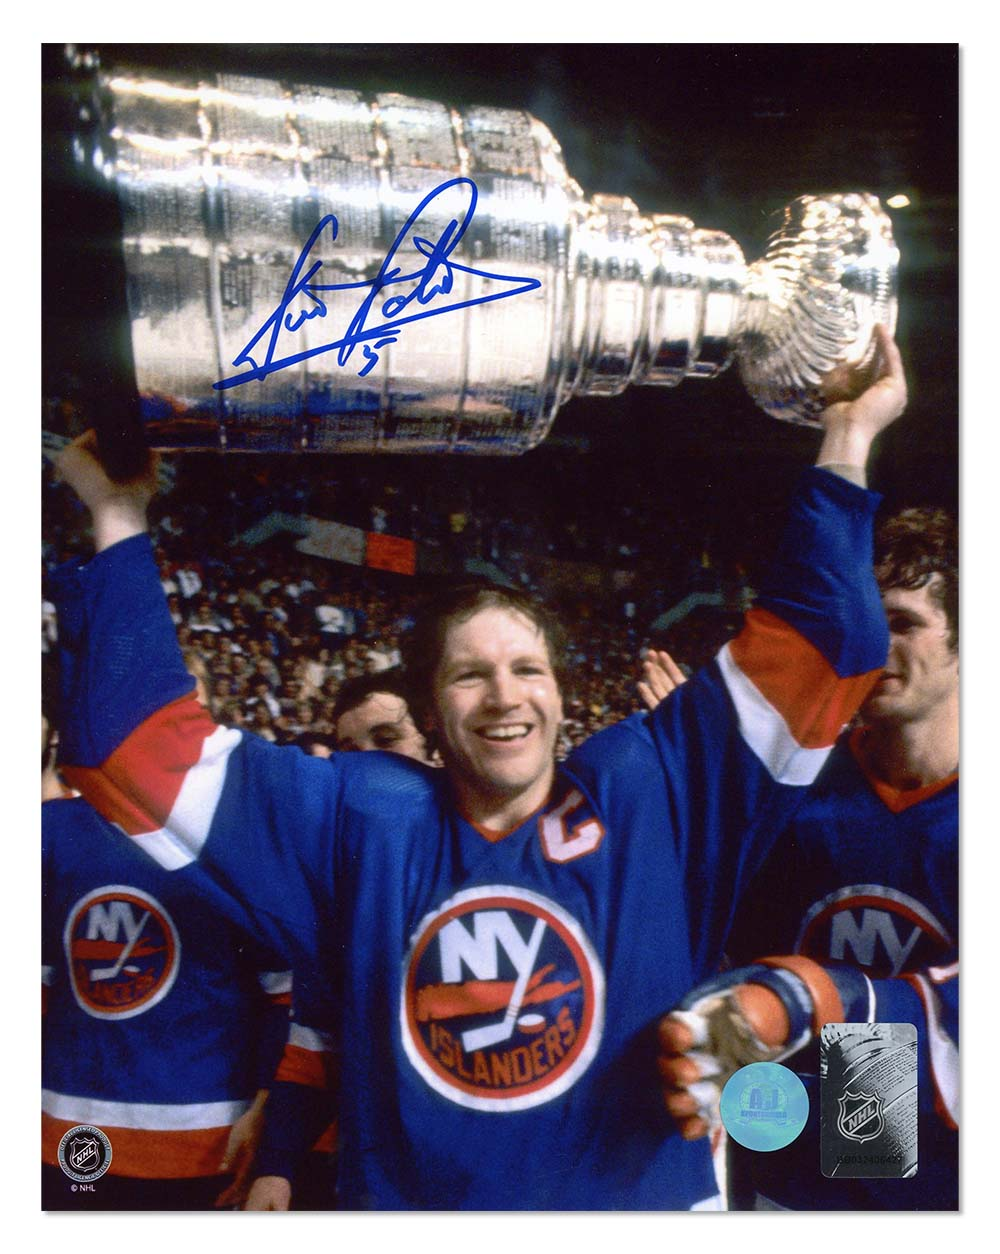 edcb4fff525 Join A.J. Sports World mailing list discounts and autograph event  newsletters